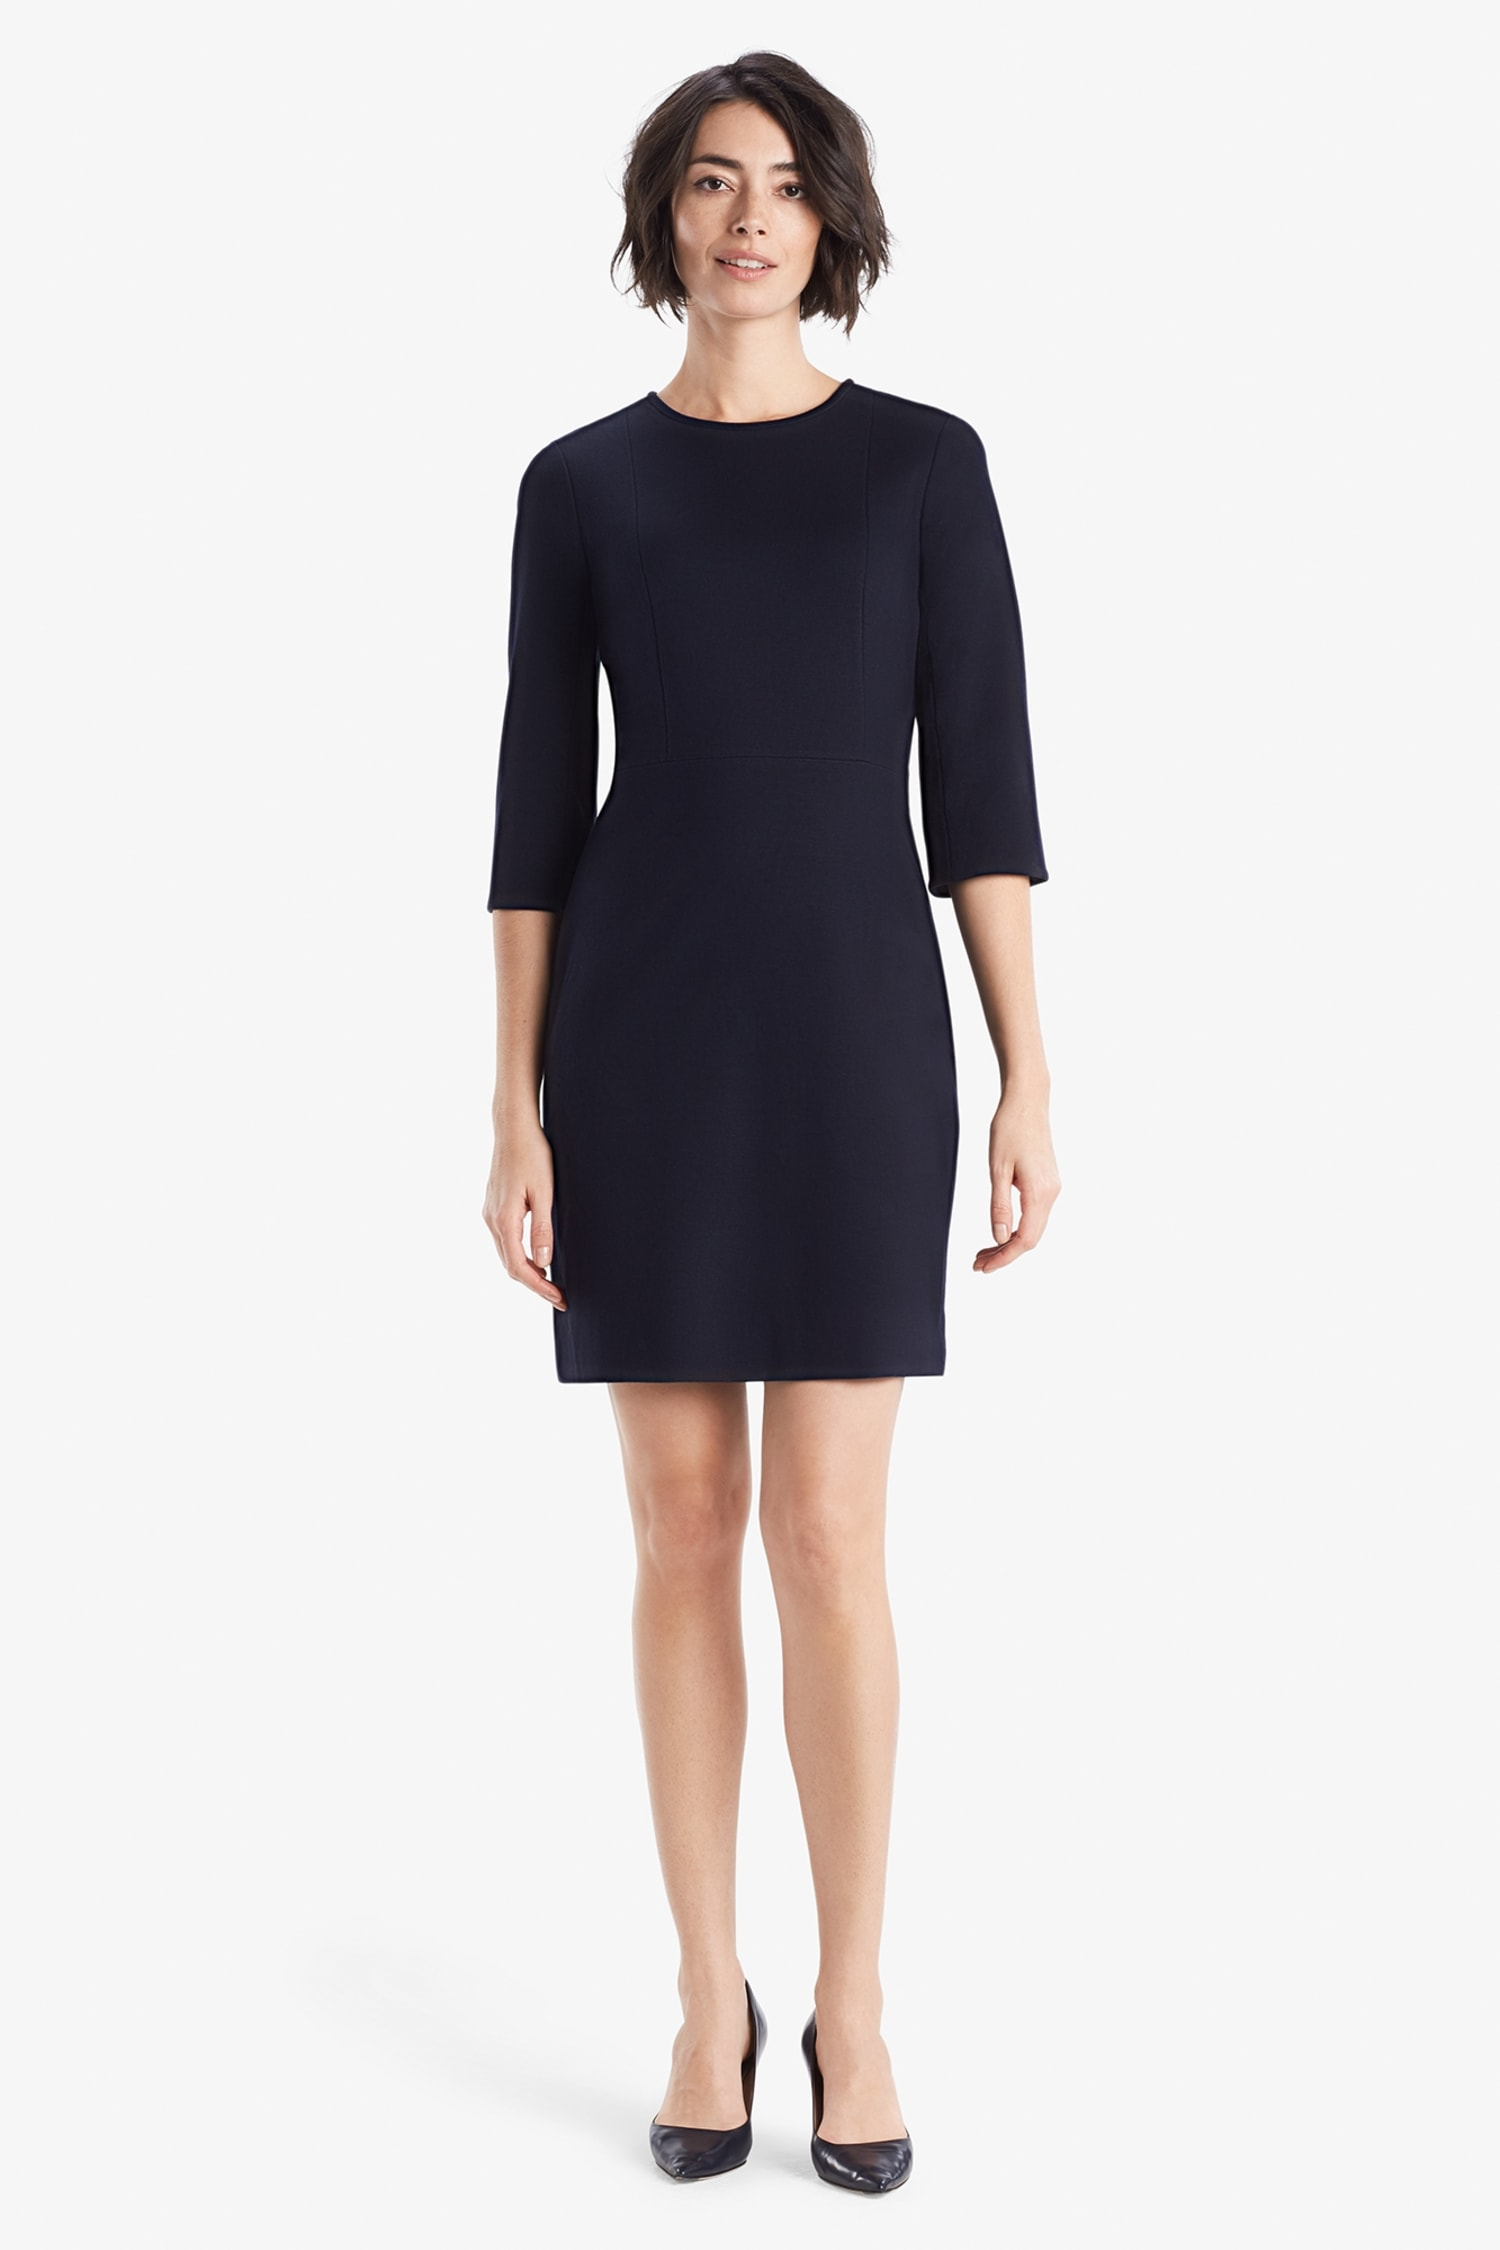 a0ee7fb87ab5 Front image of a woman standing wearing the Lena dress in galaxy blue